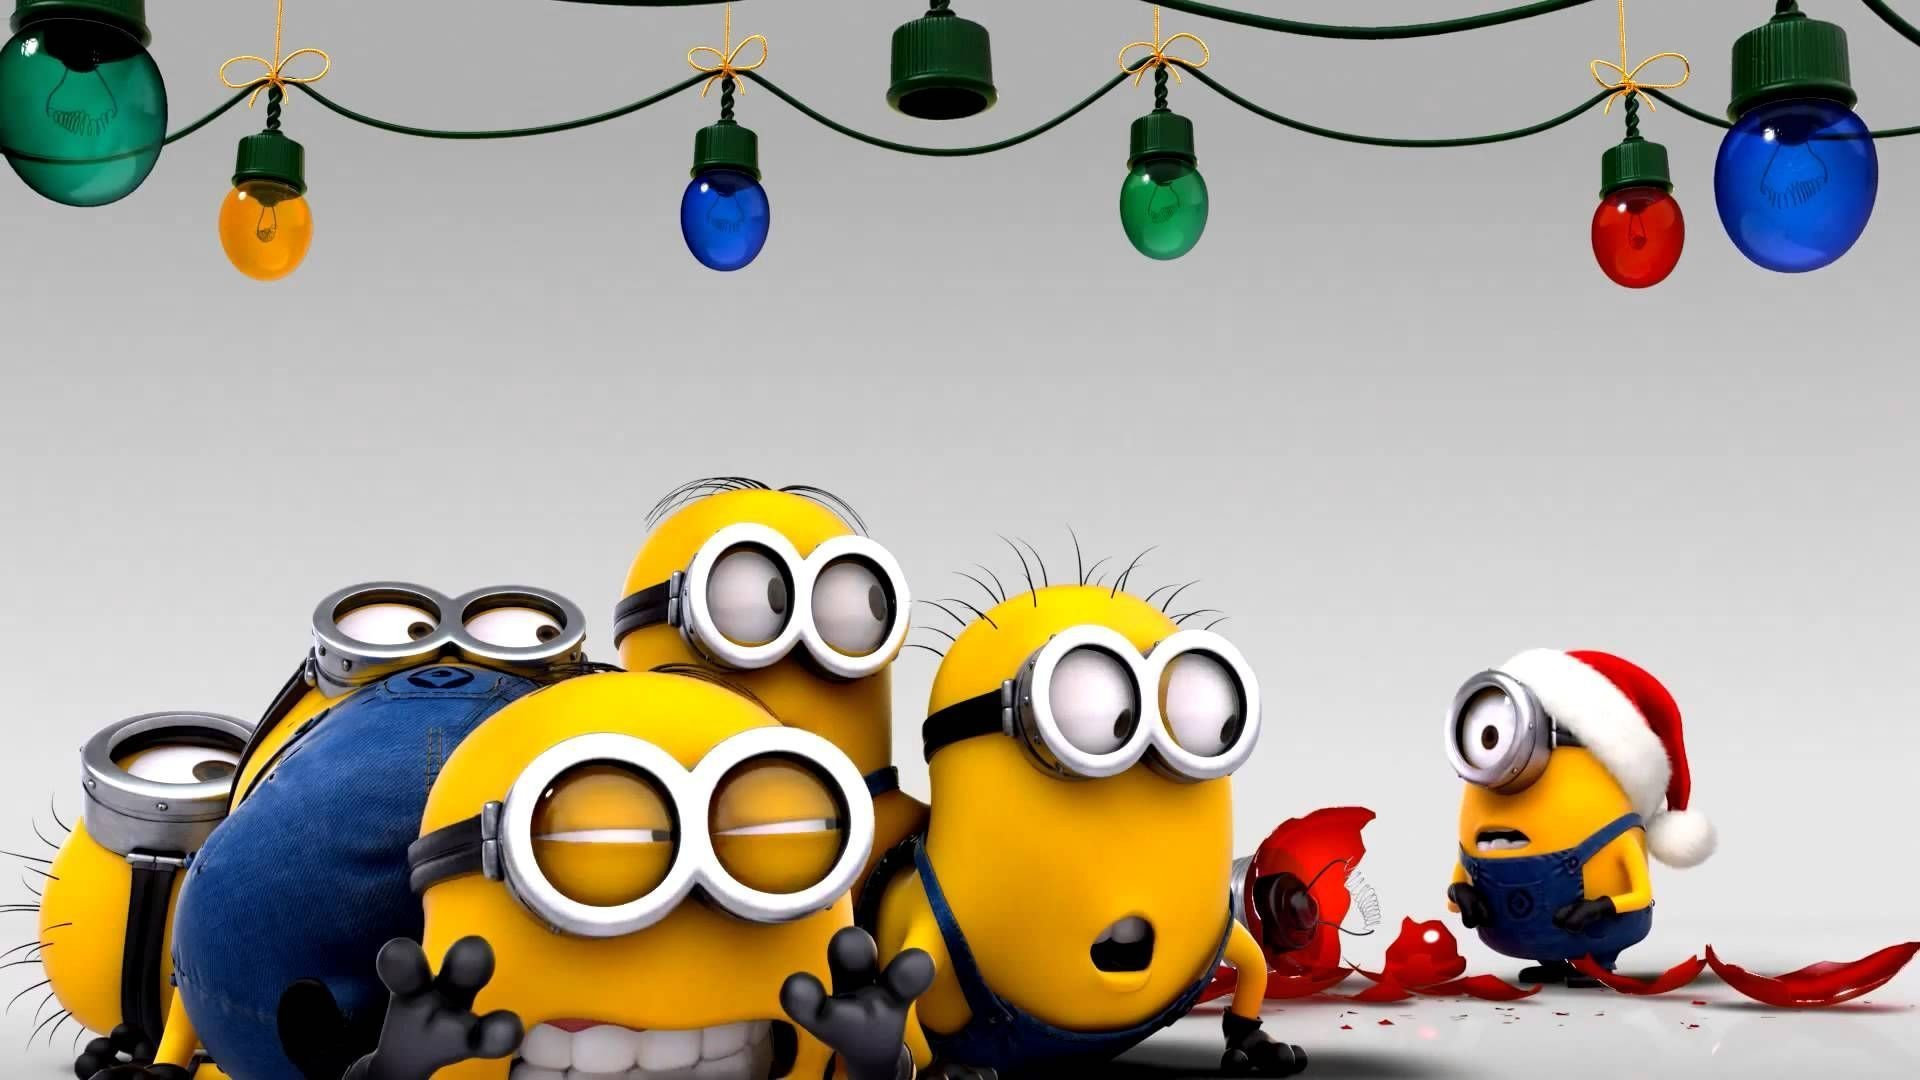 1920x1080 Christmas Minions Wallpapers Group (47+)